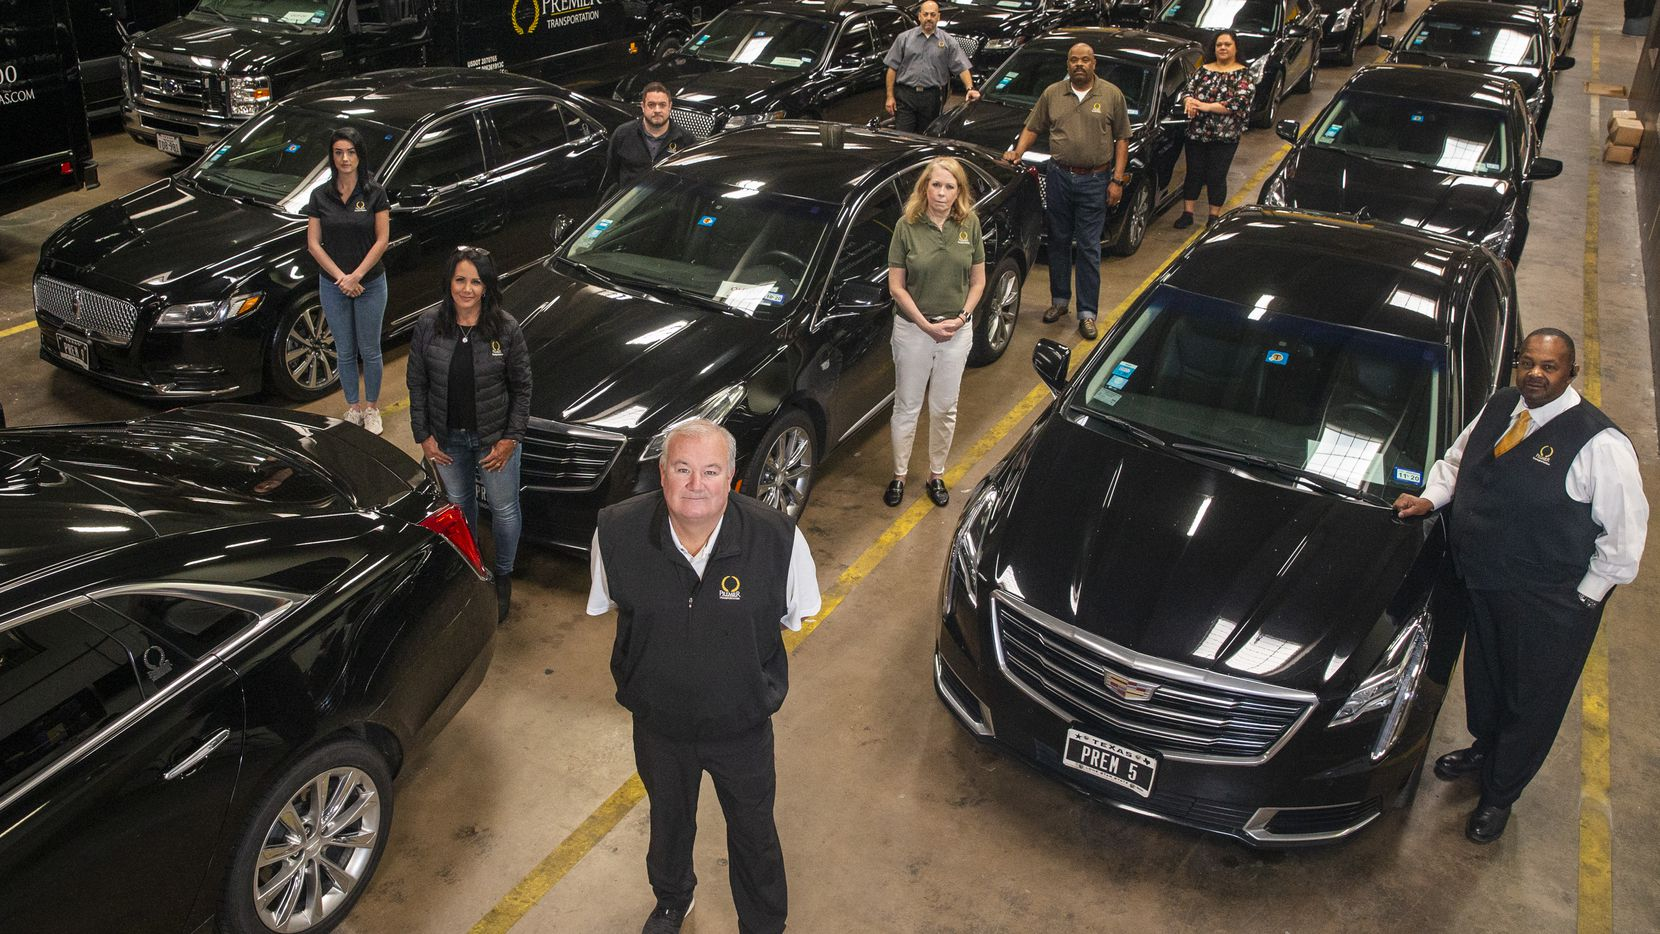 Premier Transportation owner Eric Devlin (center) and his employees pose for a portrait at the company's headquarters in Dallas on Wednesday. Devlin said he's had to lay off 75% of his workforce to keep the company afloat.